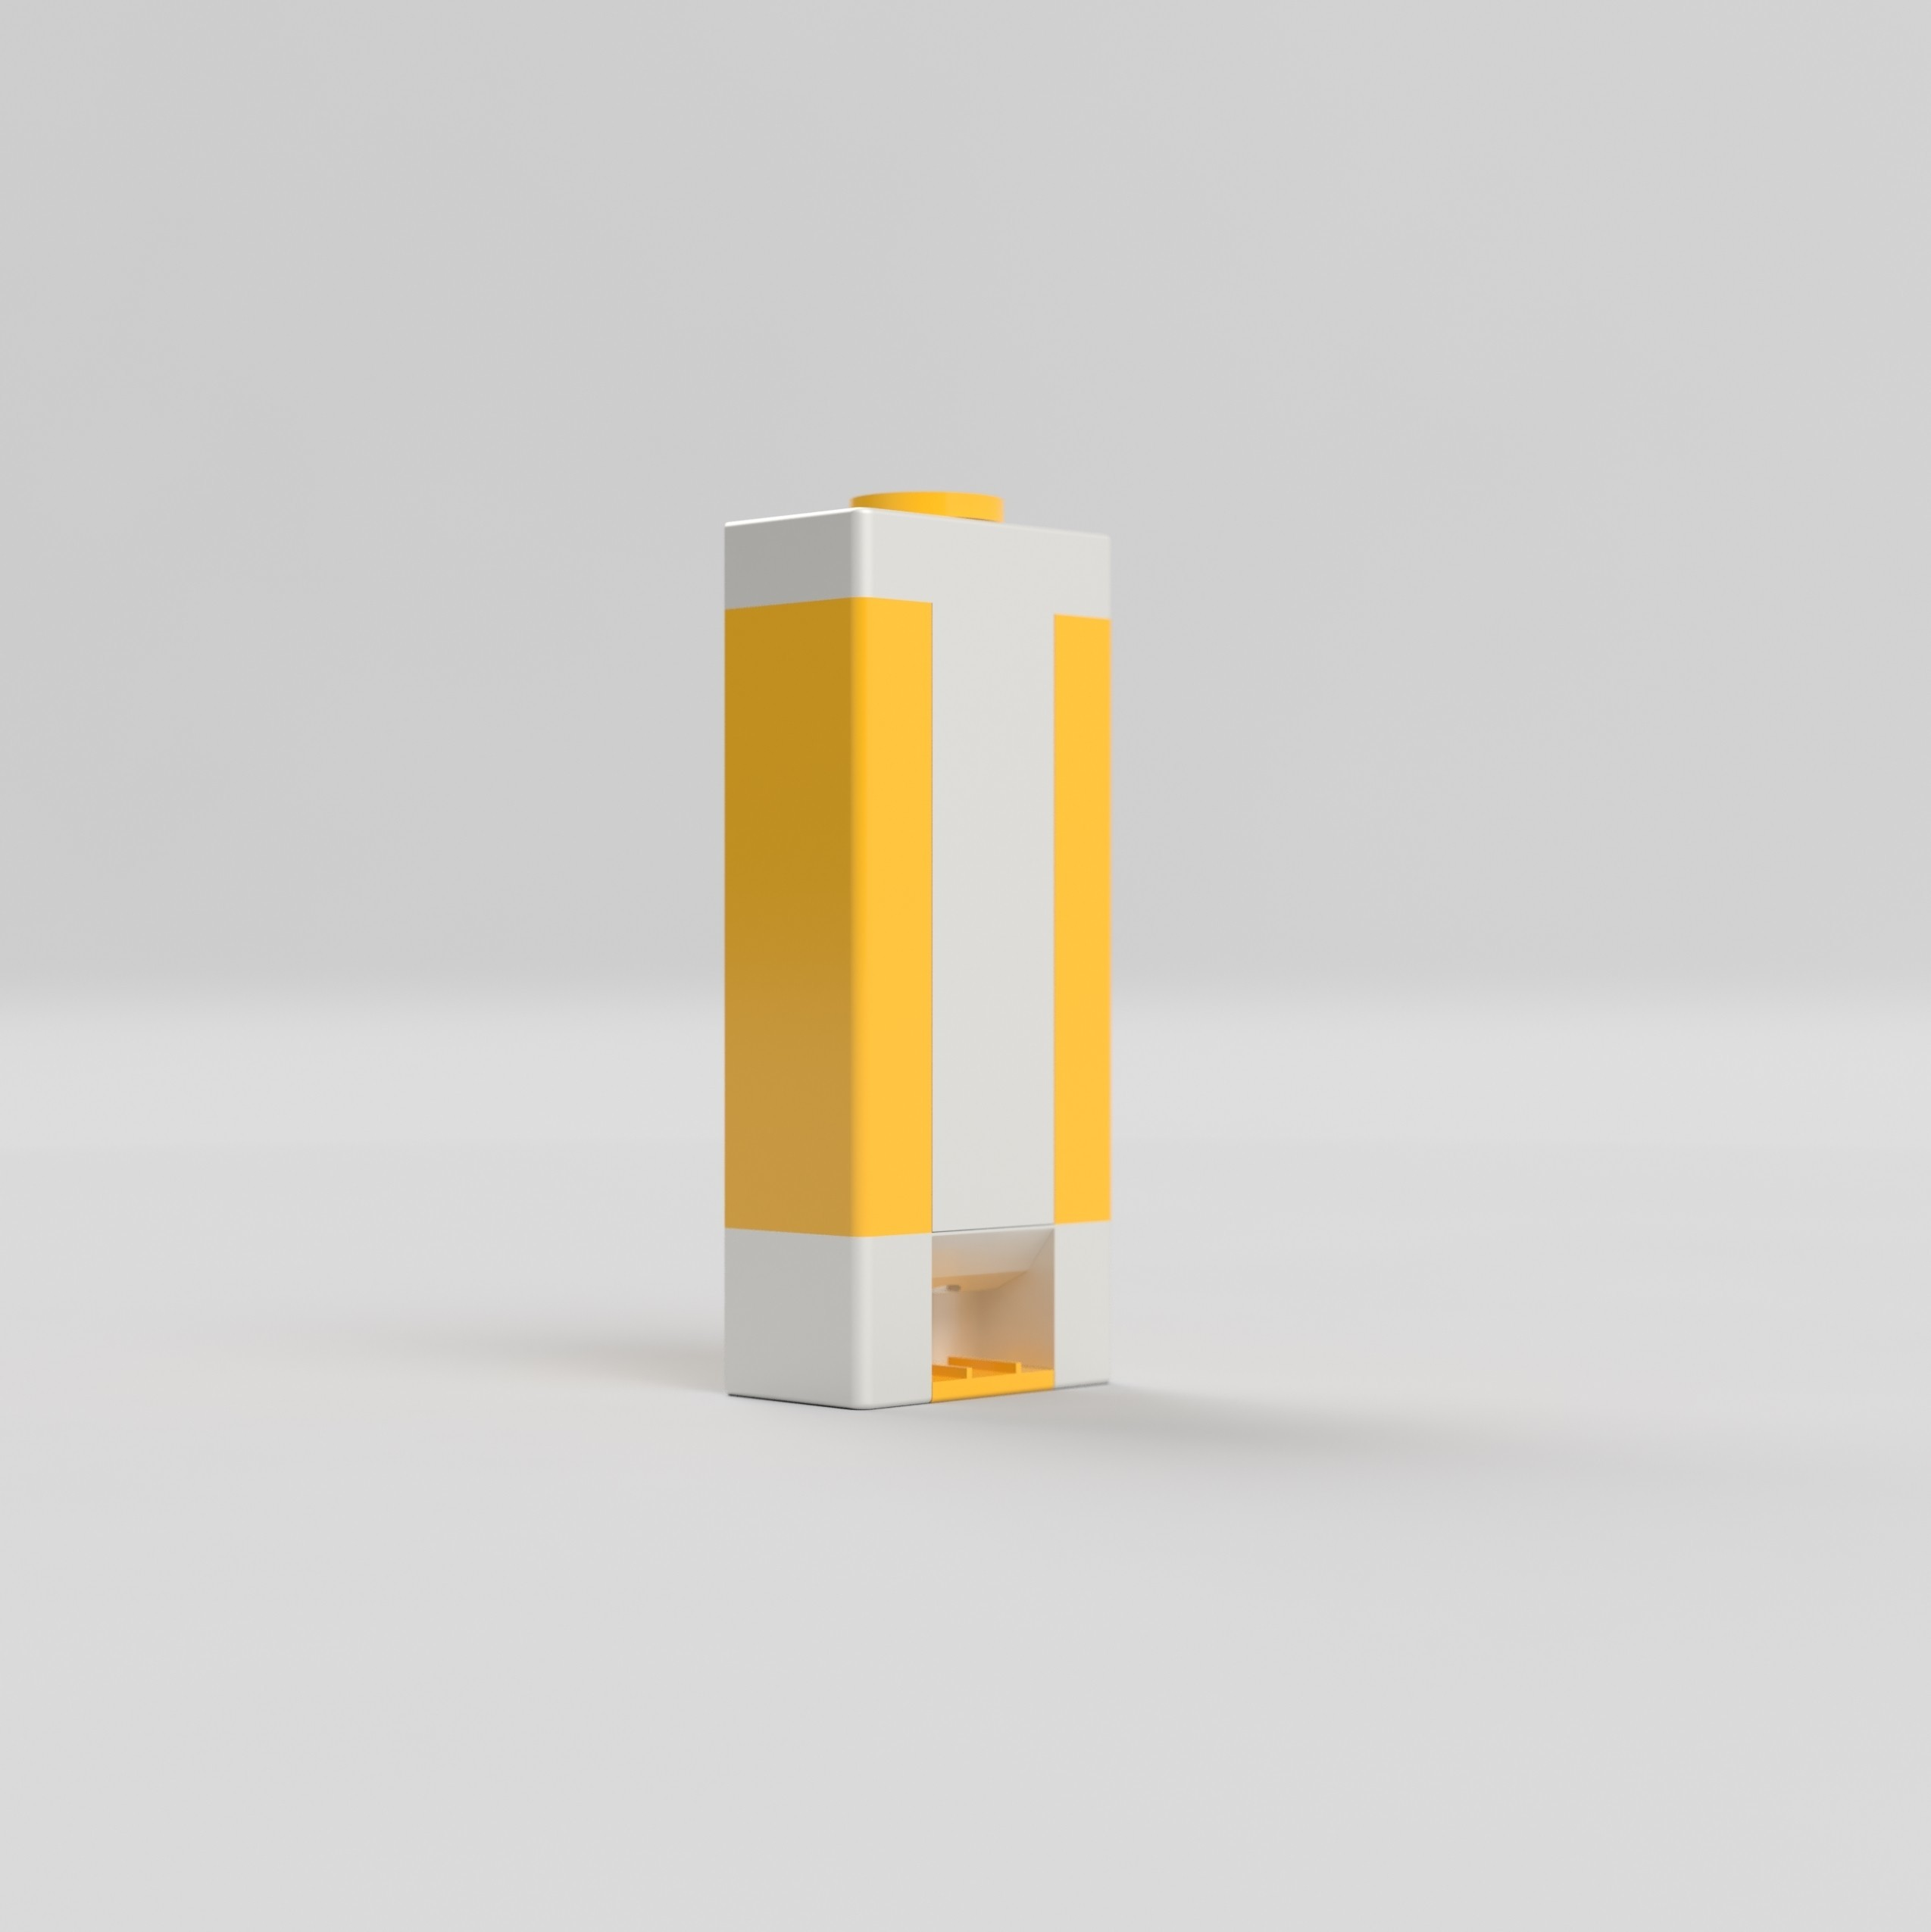 Assy_2017-Nov-28_06-34-16PM-000_CustomizedView13325155747_png.jpg Download free STL file Toothpaste Dispenser • 3D print model, Anthony_SA